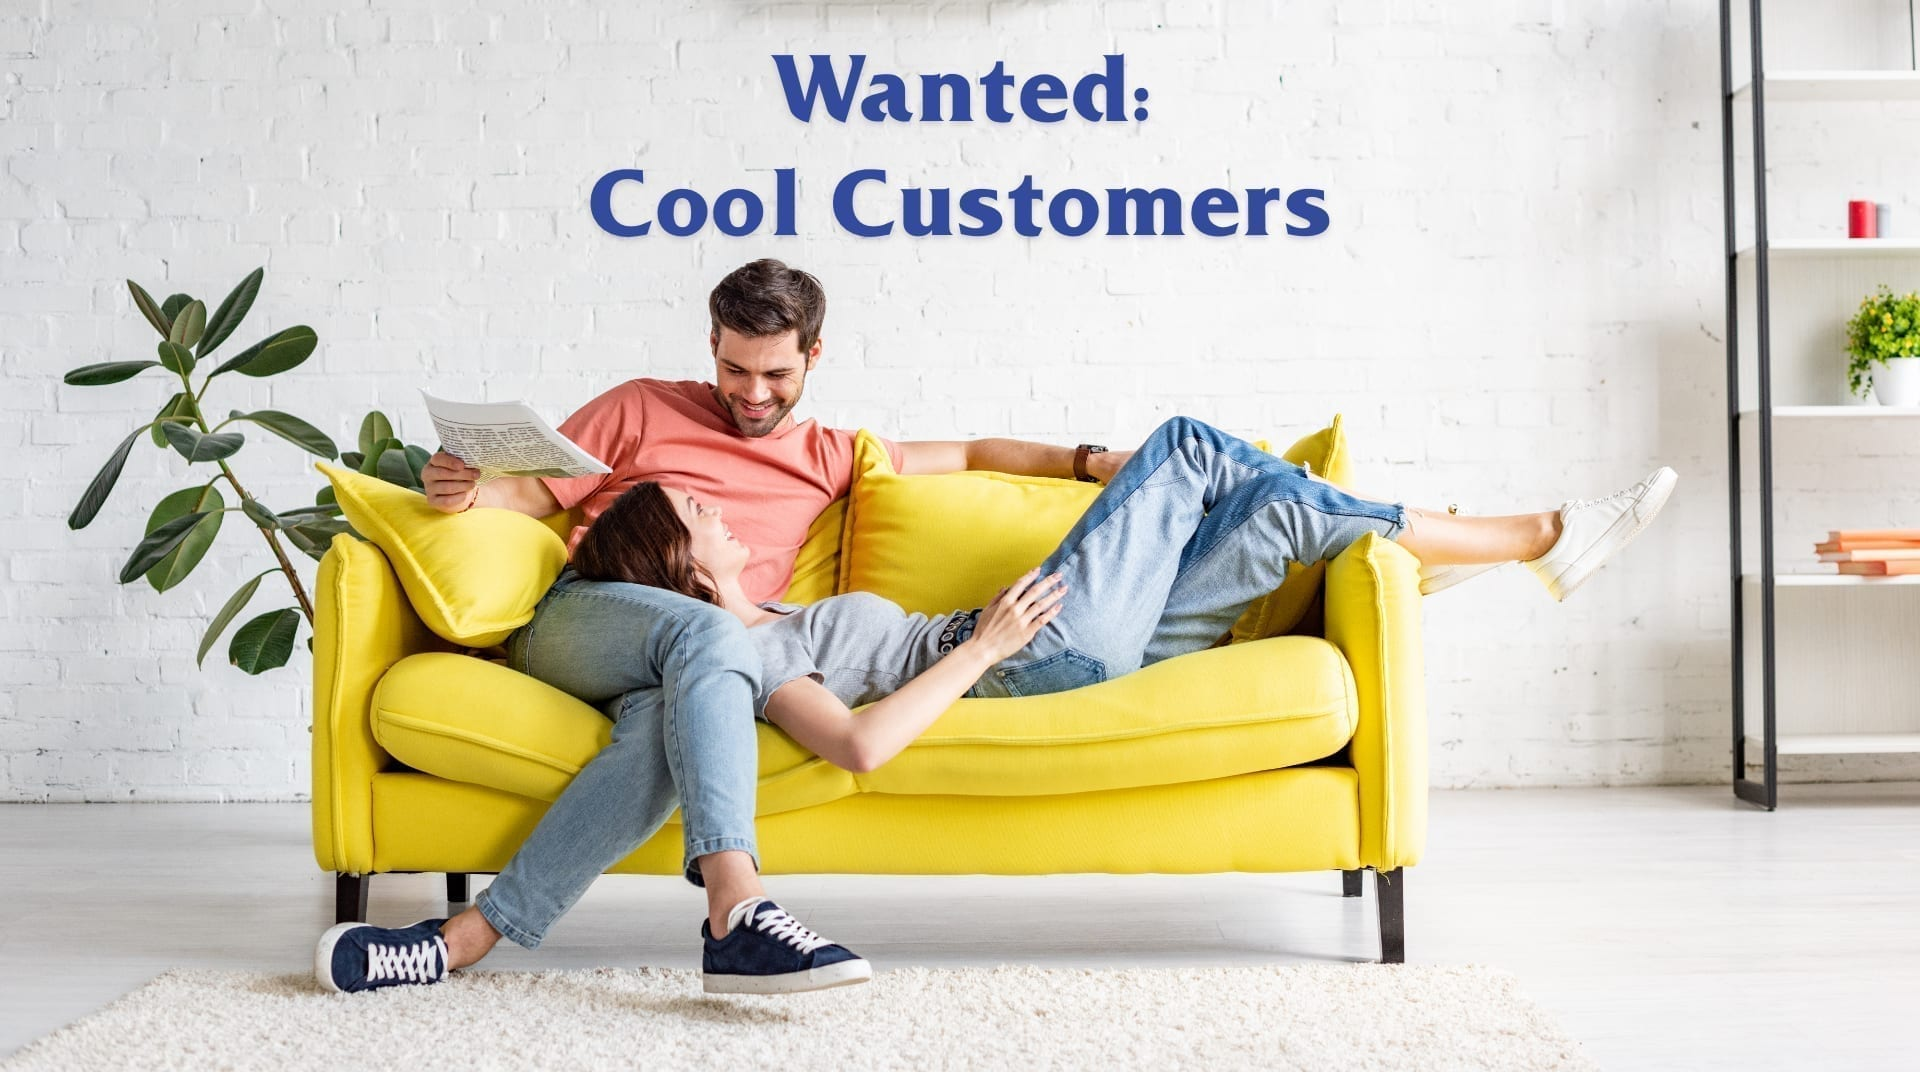 CoolCustomers-1